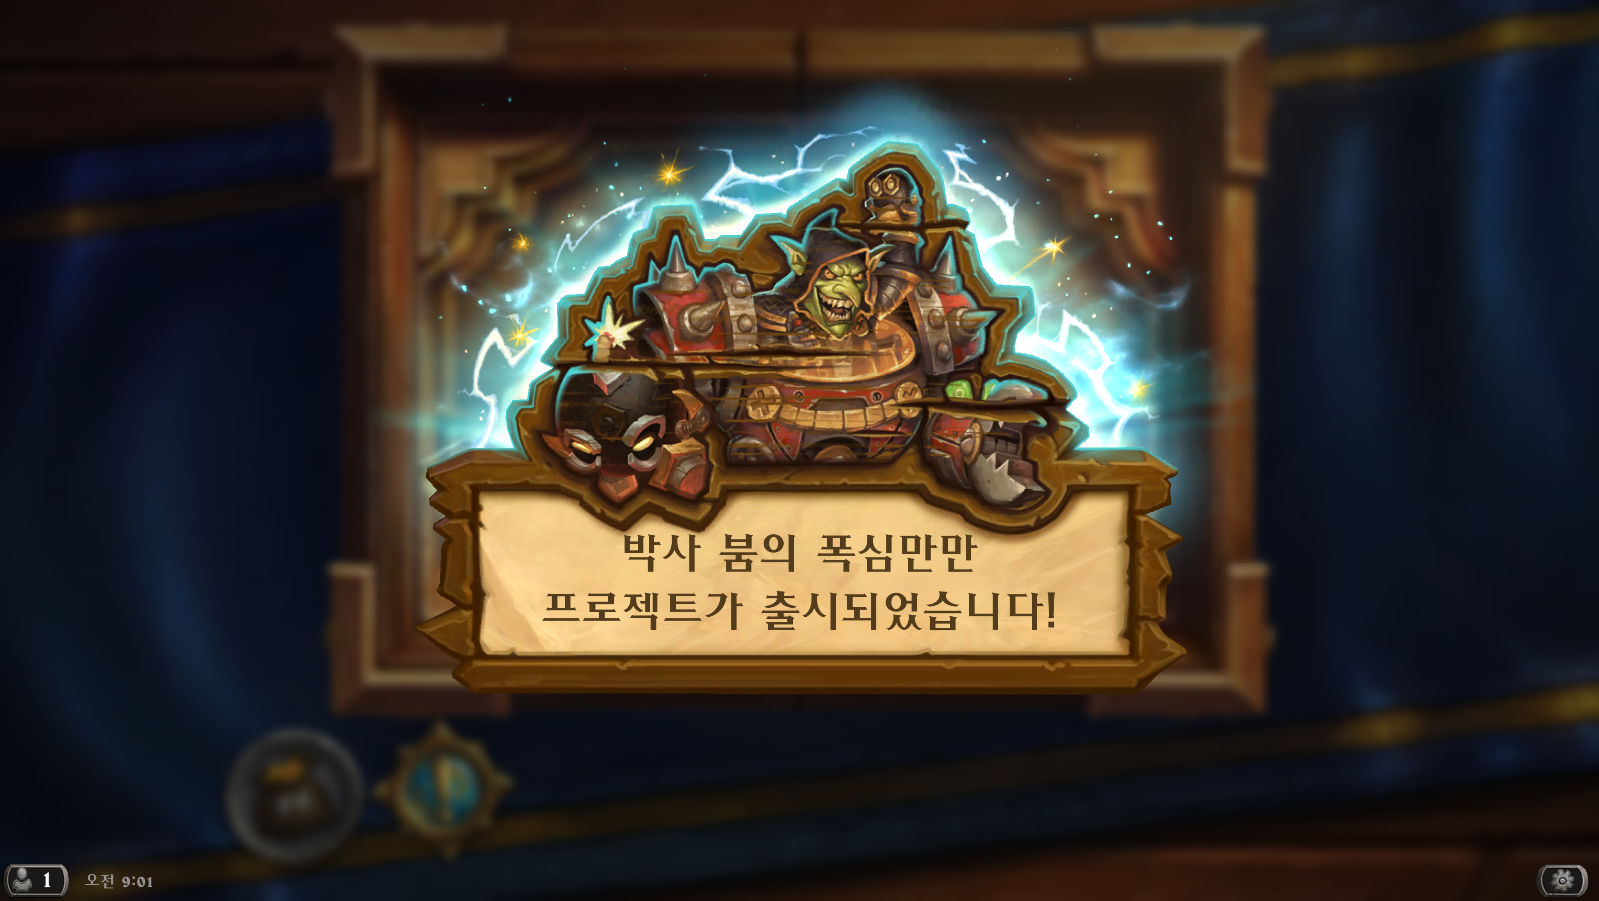 Hearthstone Screenshot 08-08-18 09.01.39.png